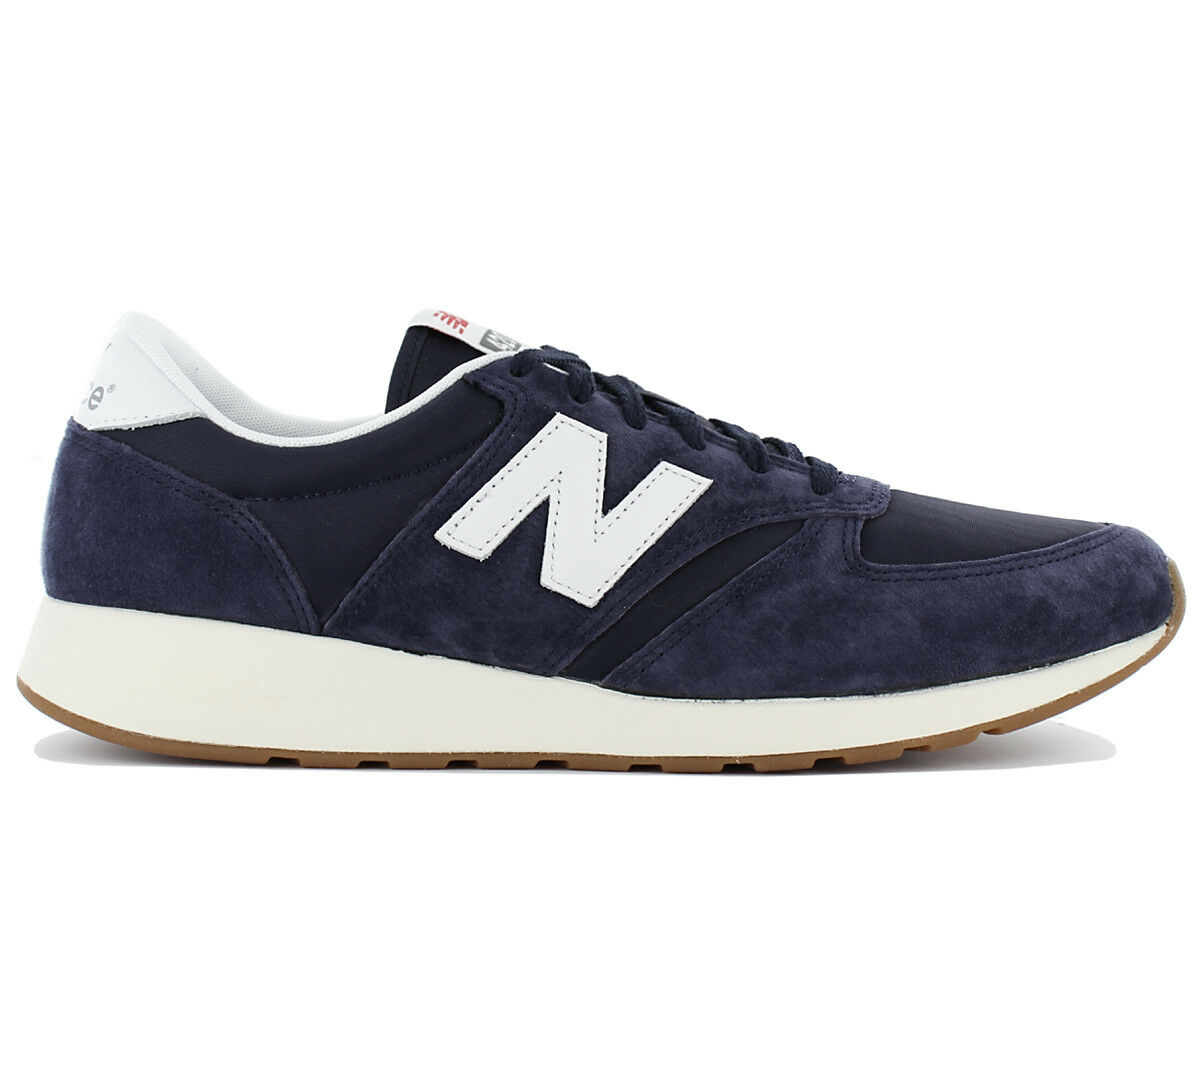 New Balance 420 Sneaker Mens shoes Navy bluee Sneakers Leisure Leisure Leisure Mrl420sq New 67fa17